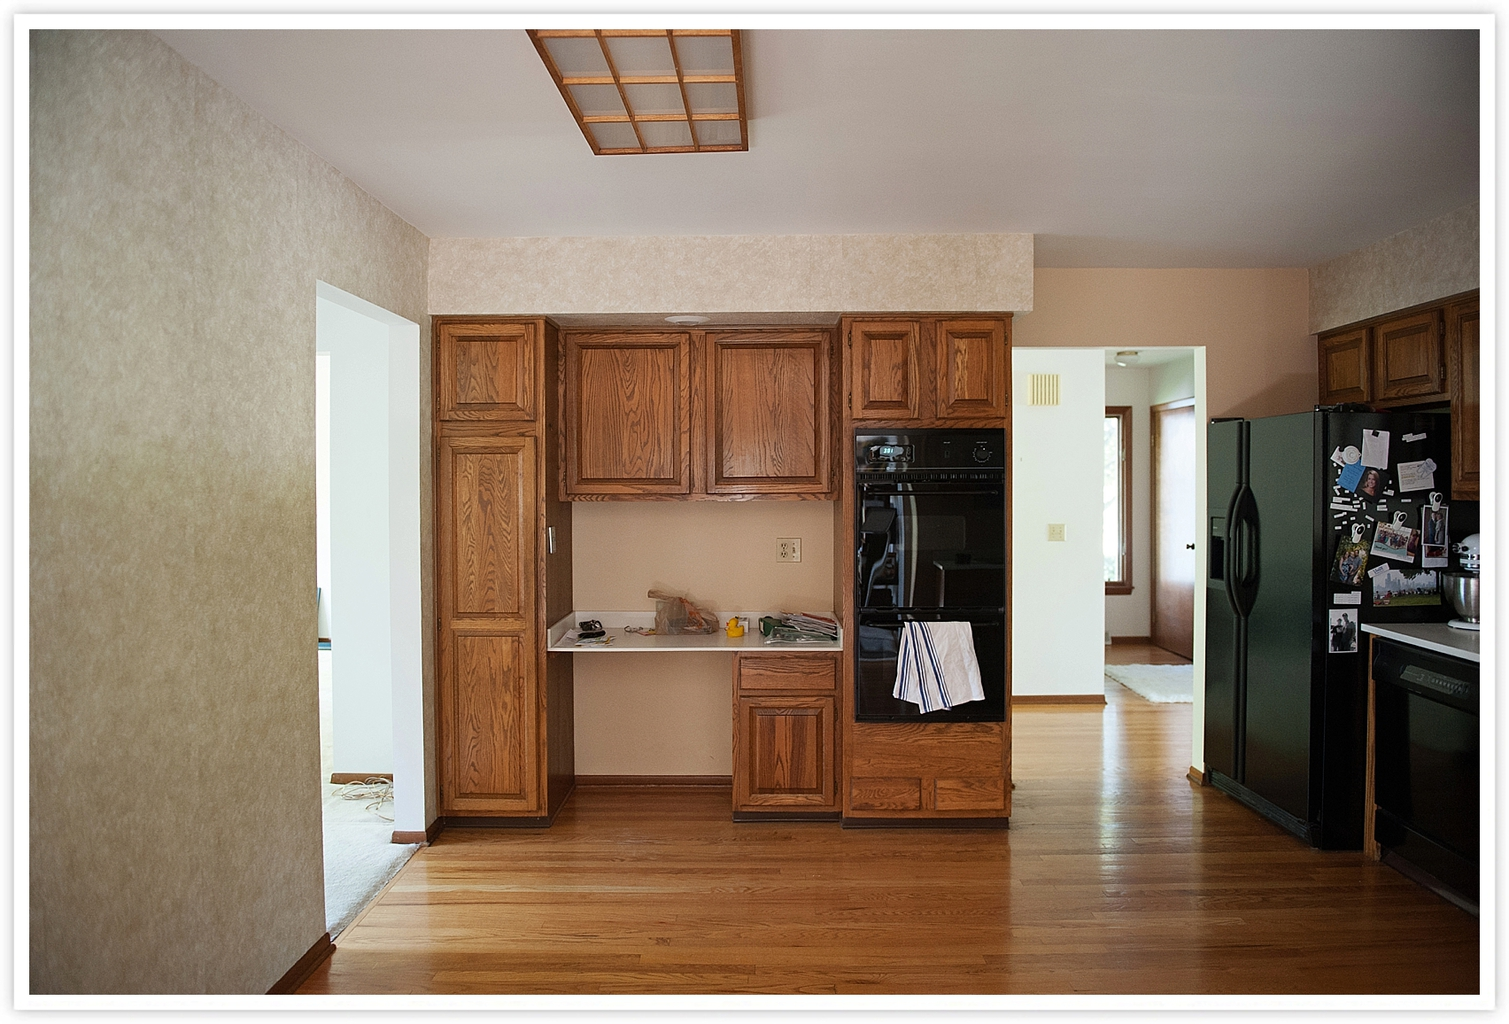 Ikea Semihandmade Kitchen Renovation Before And After Allie Co Photography Lansing Michigan Wedding Photographers